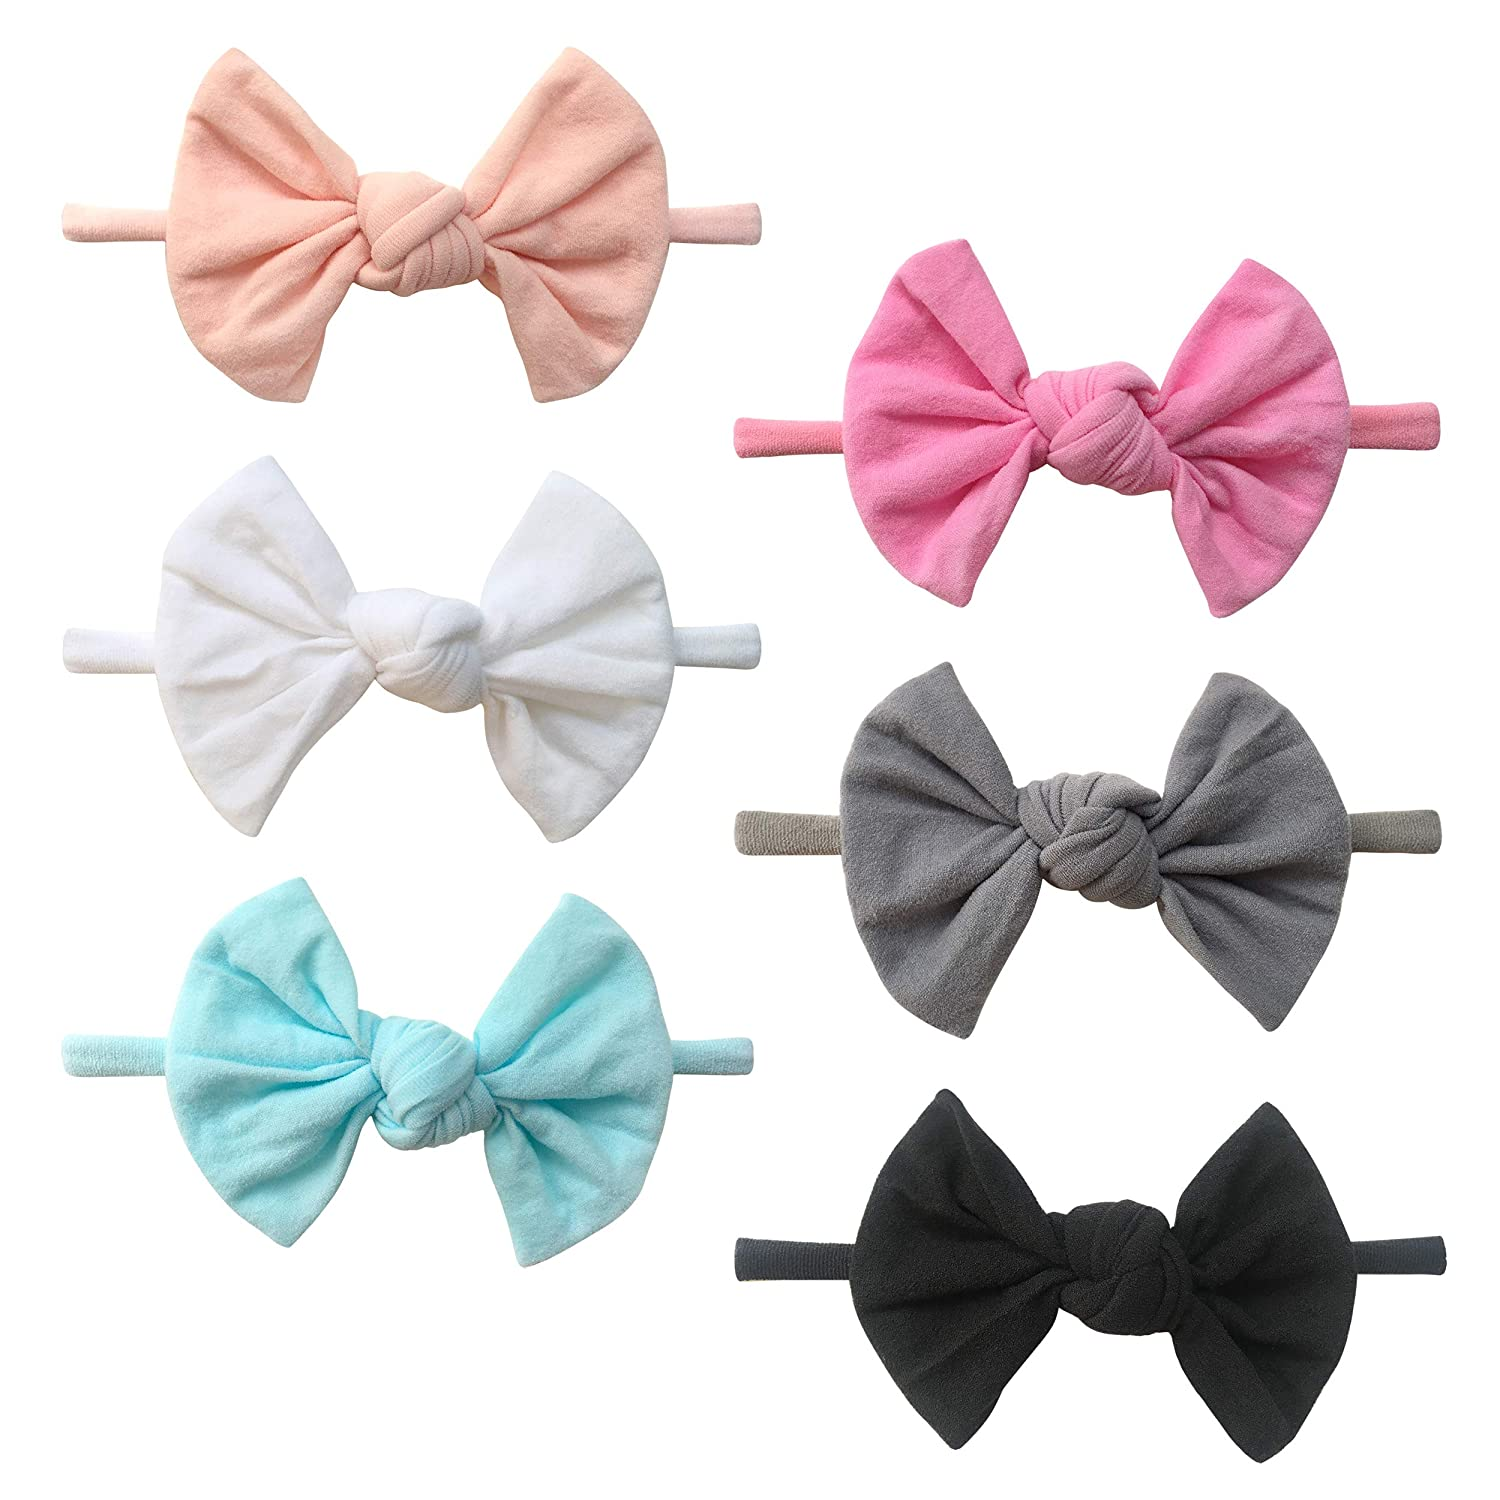 Baby Super Soft Nylon Headbands And Bows, Hair Accessories For Newborn Girls